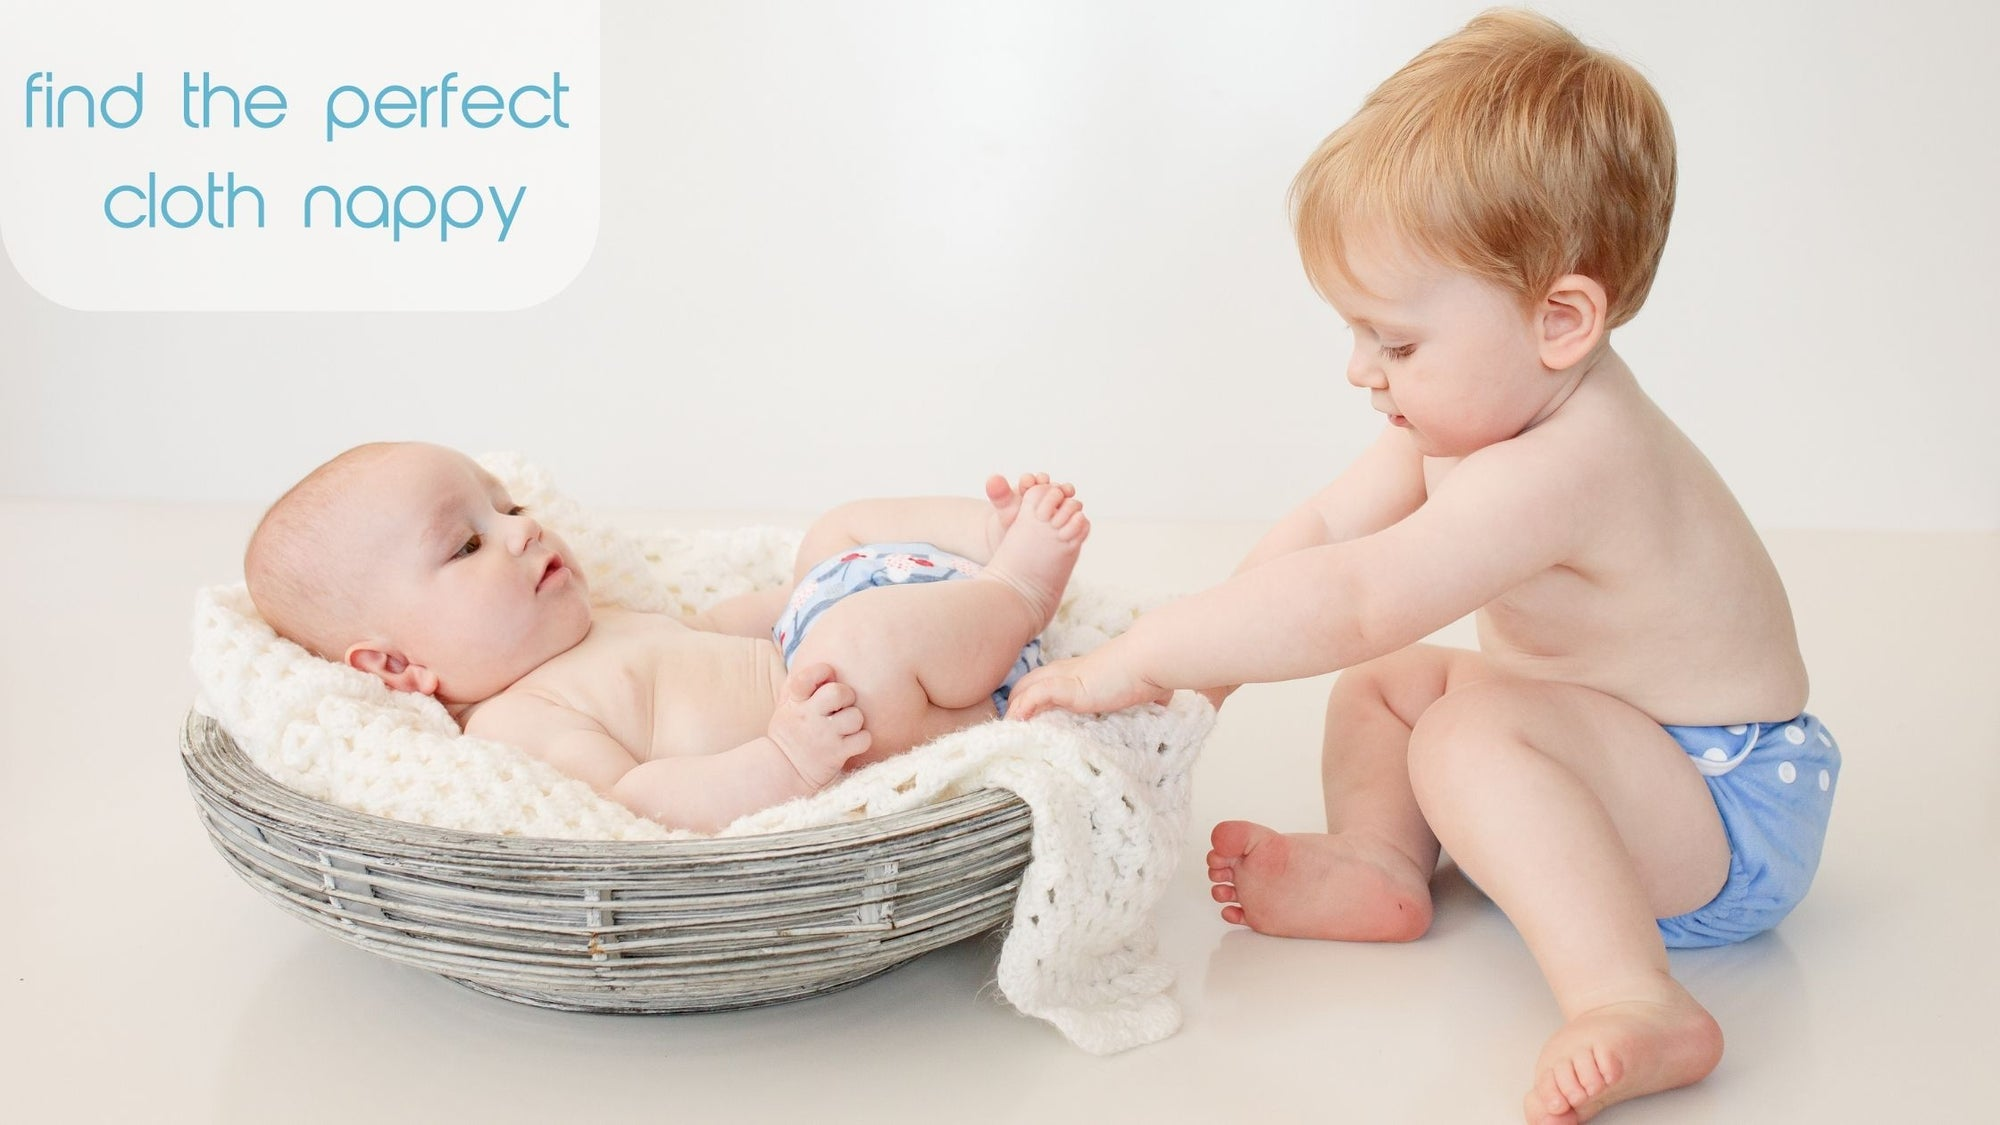 How To Find The Perfect Cloth Nappy For You